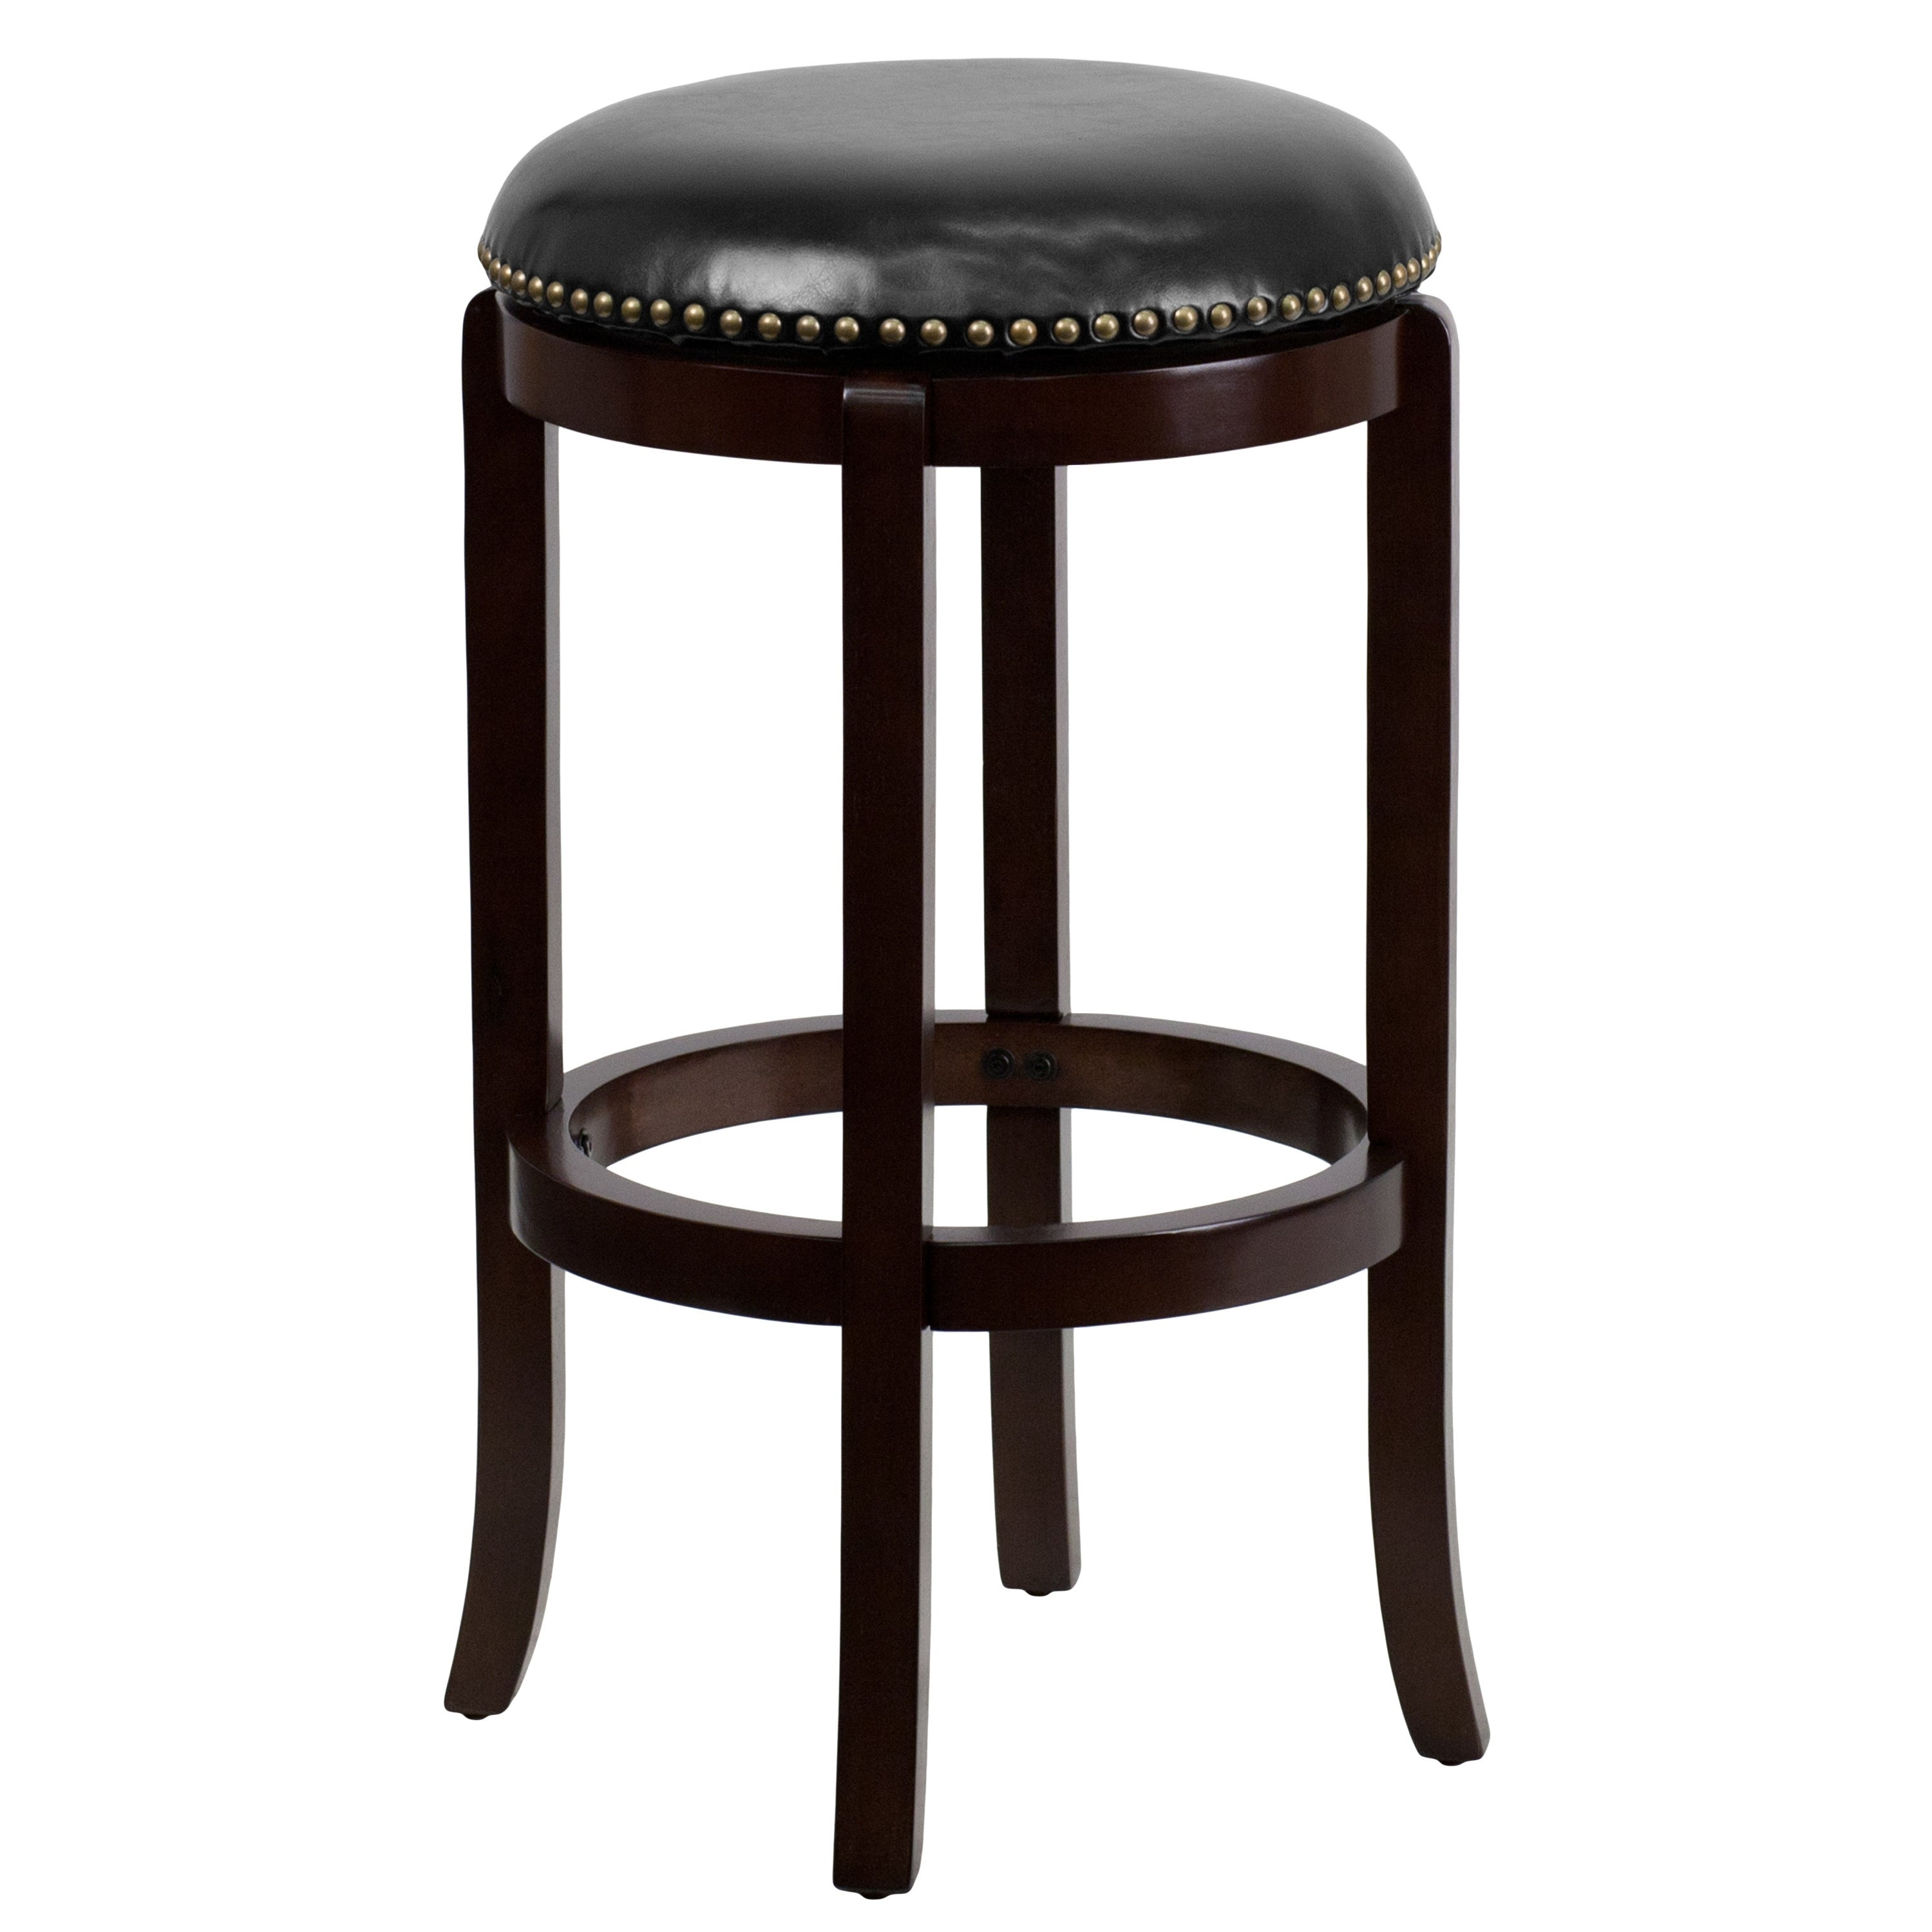 FLASH Furniture Backless 29-inch Wood Bar Stool with Leat...